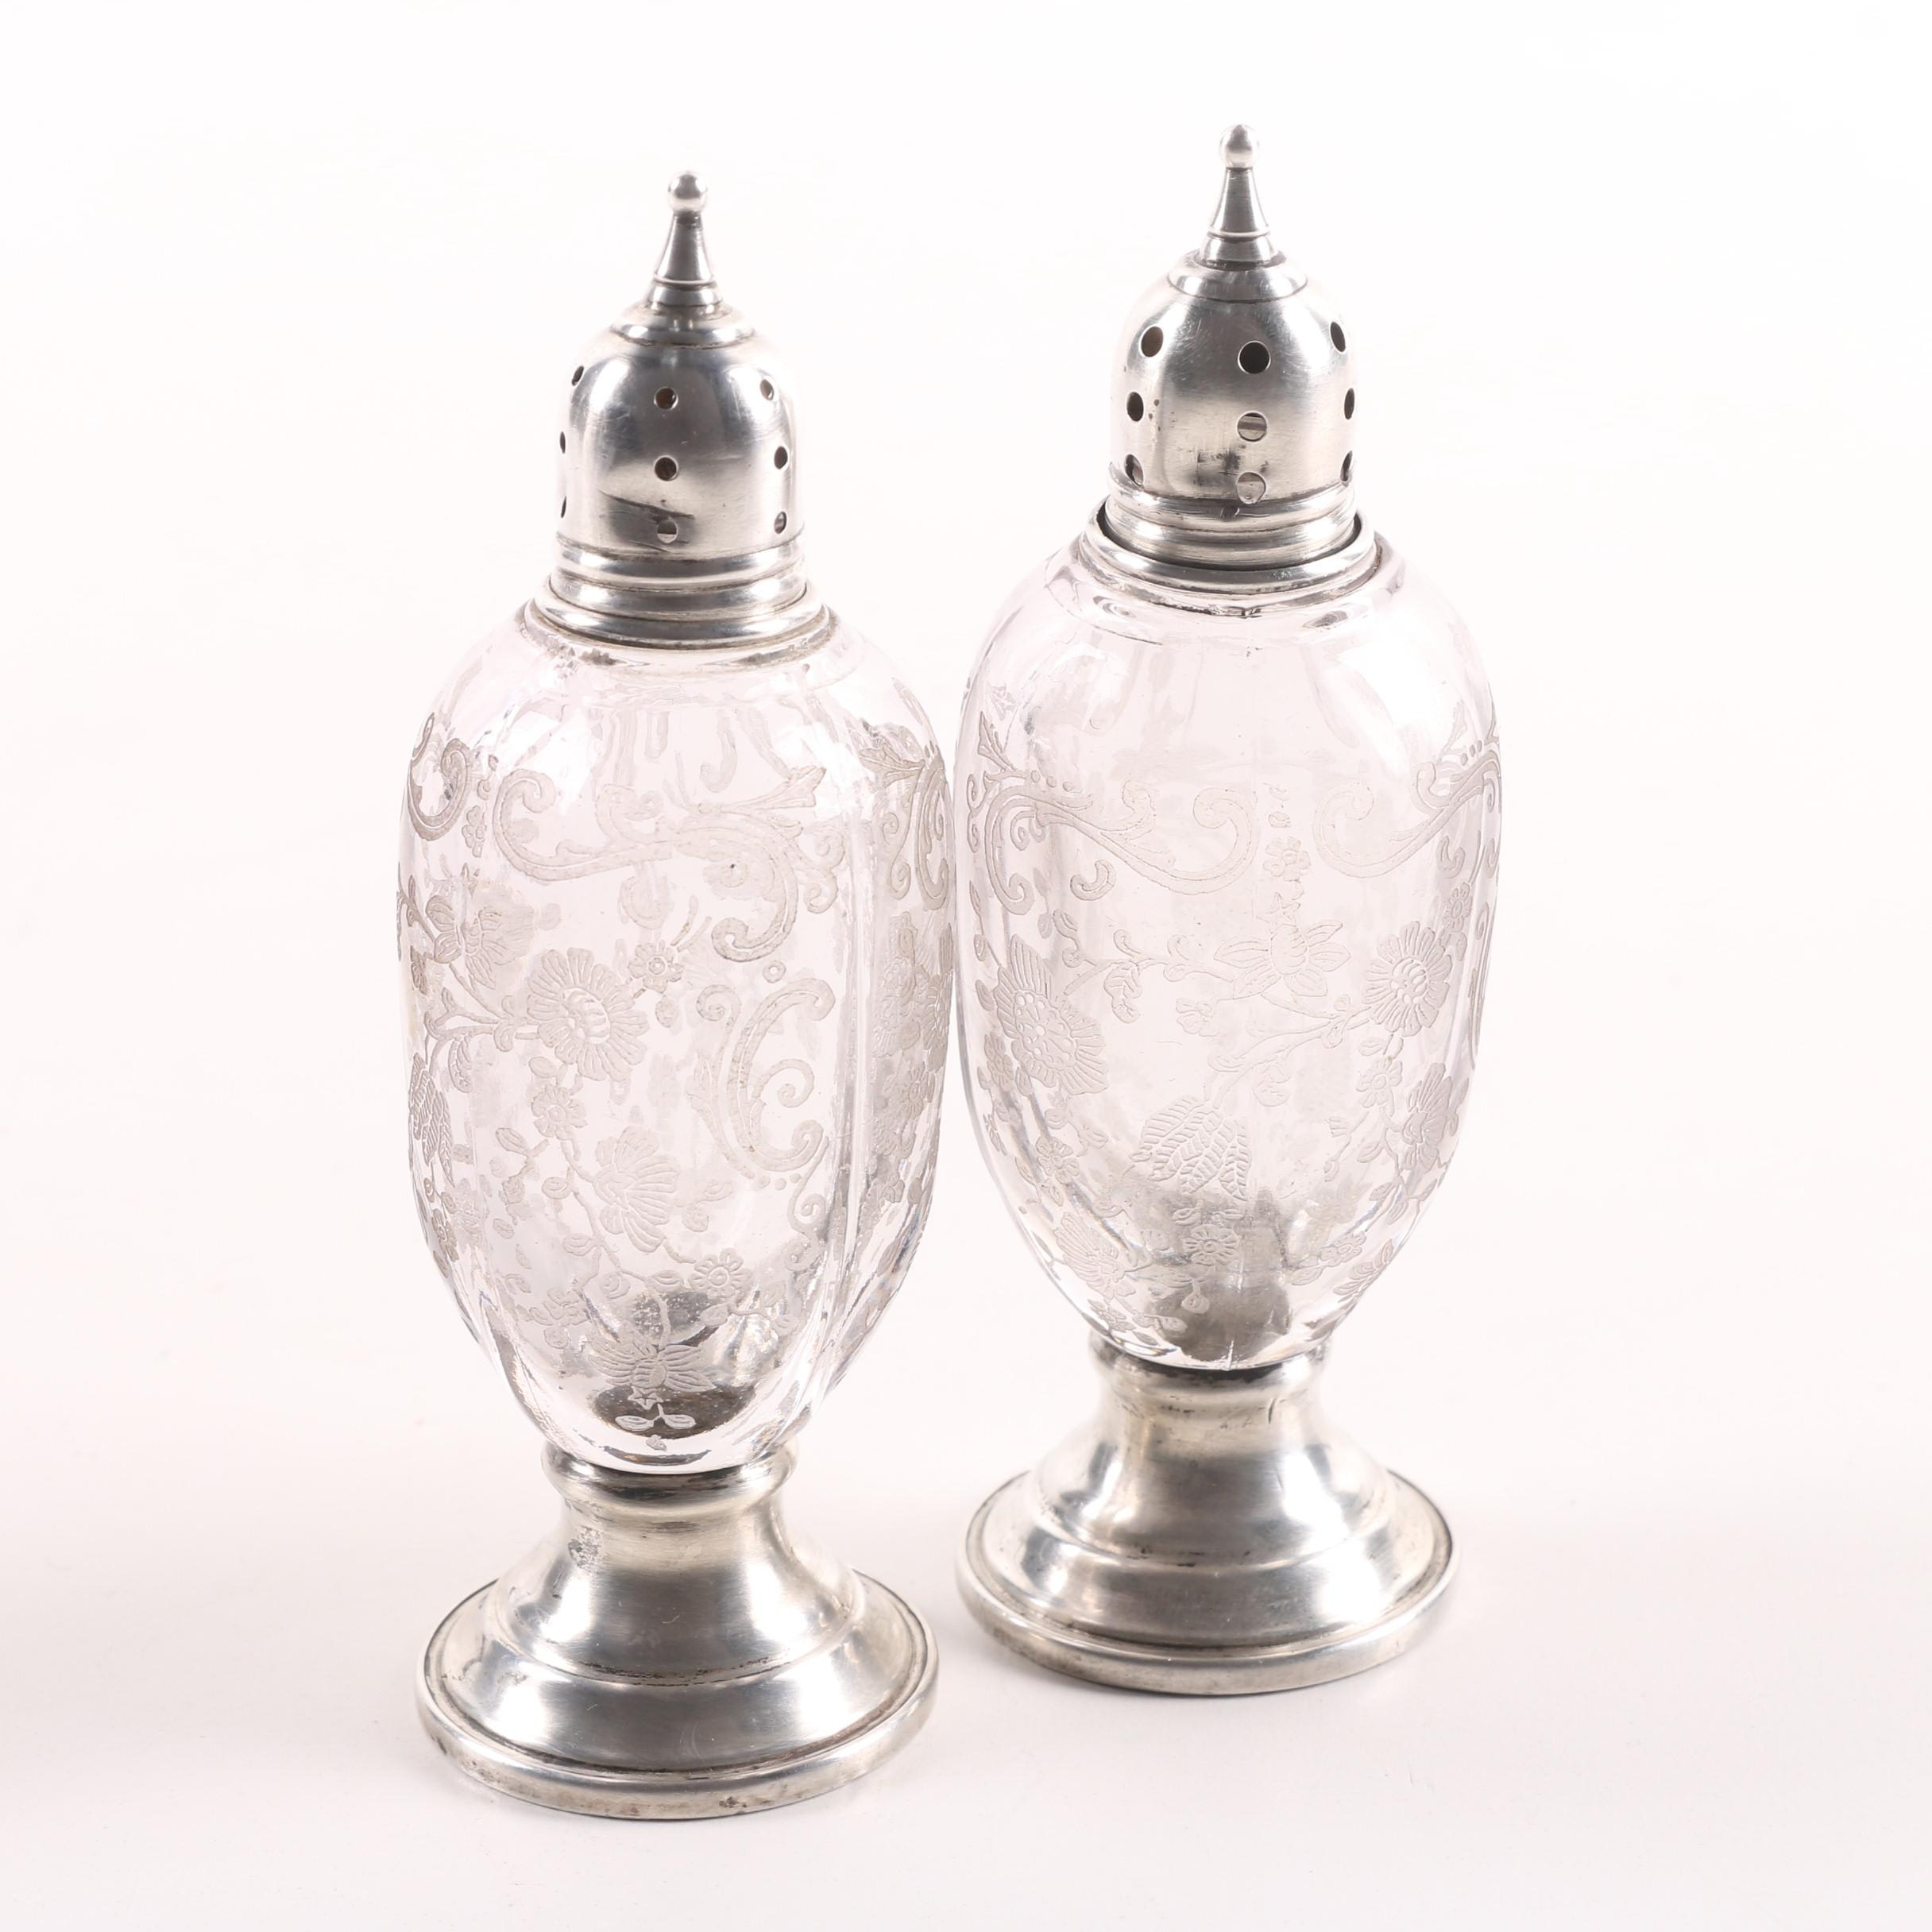 Sheffield Silver Co. Weighted Sterling and Glass Salt and Pepper Shaker Set